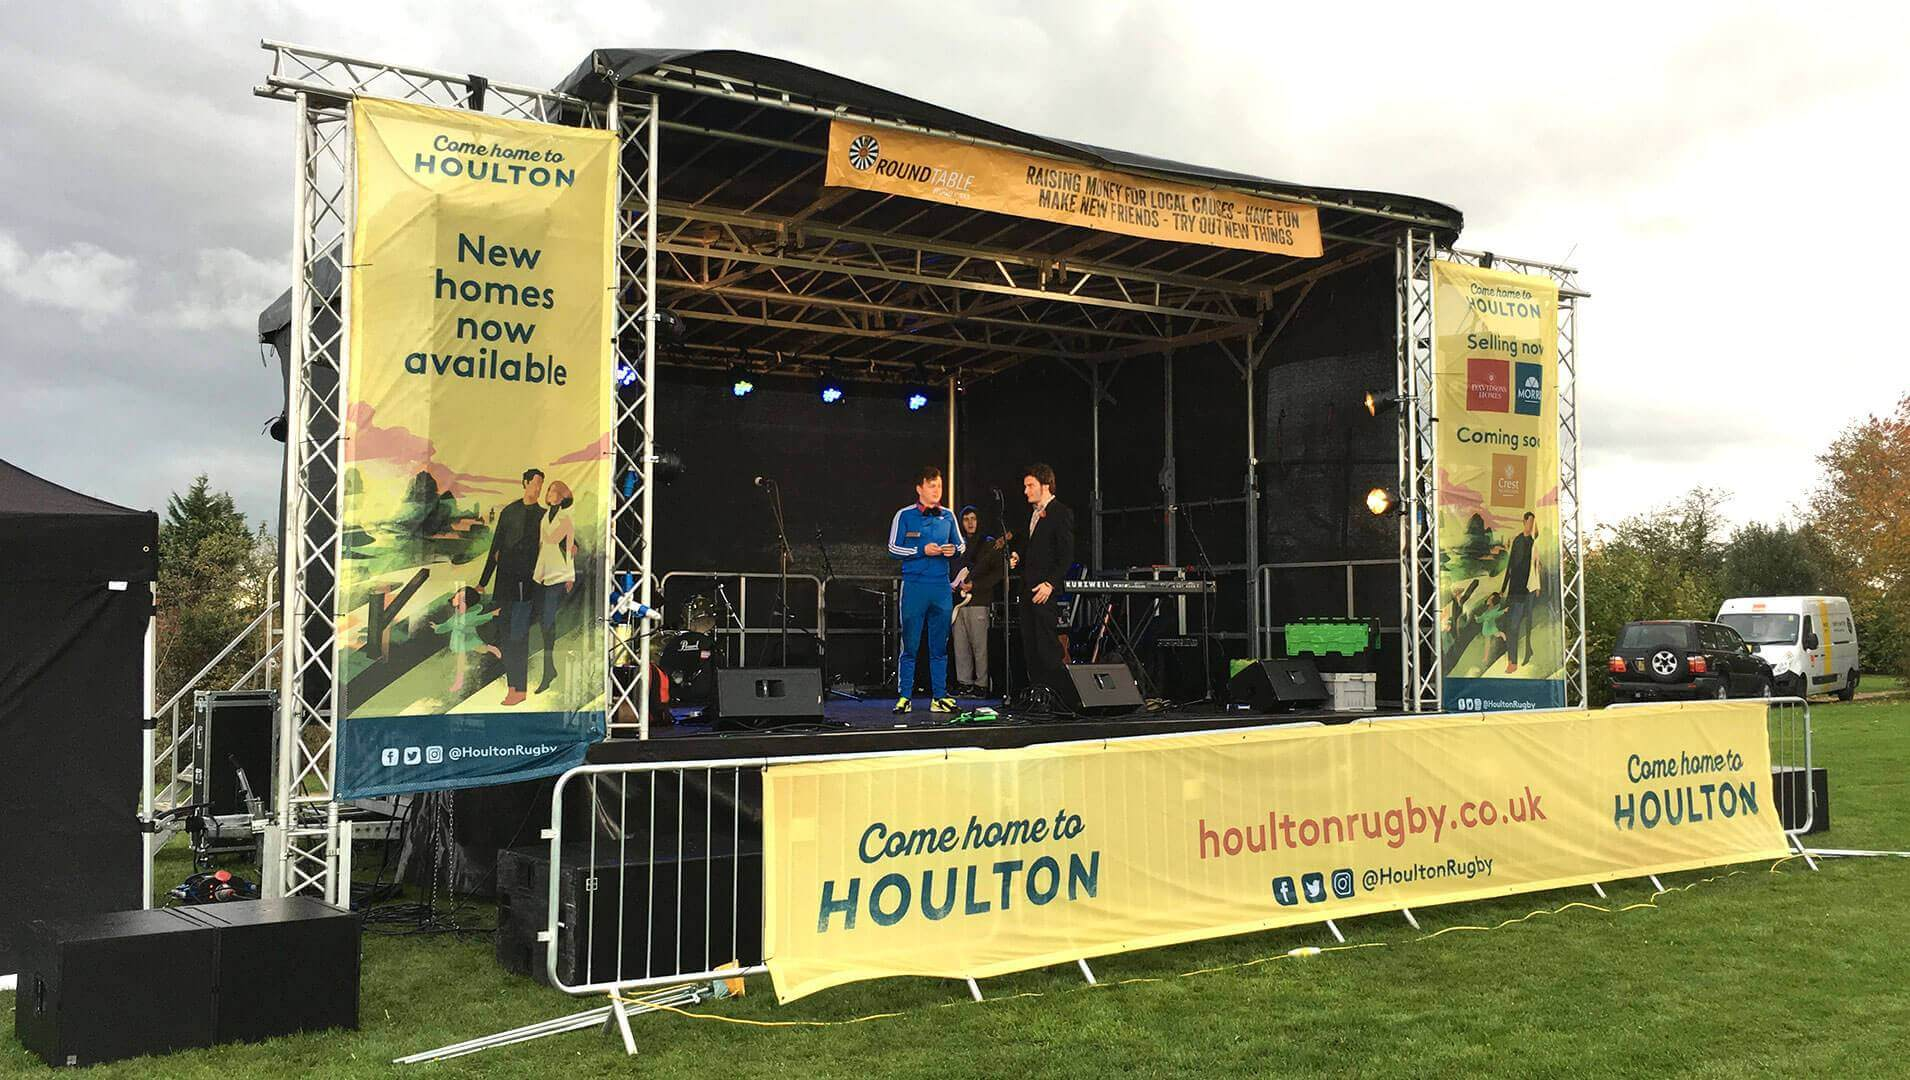 Outdoor event at Houlton